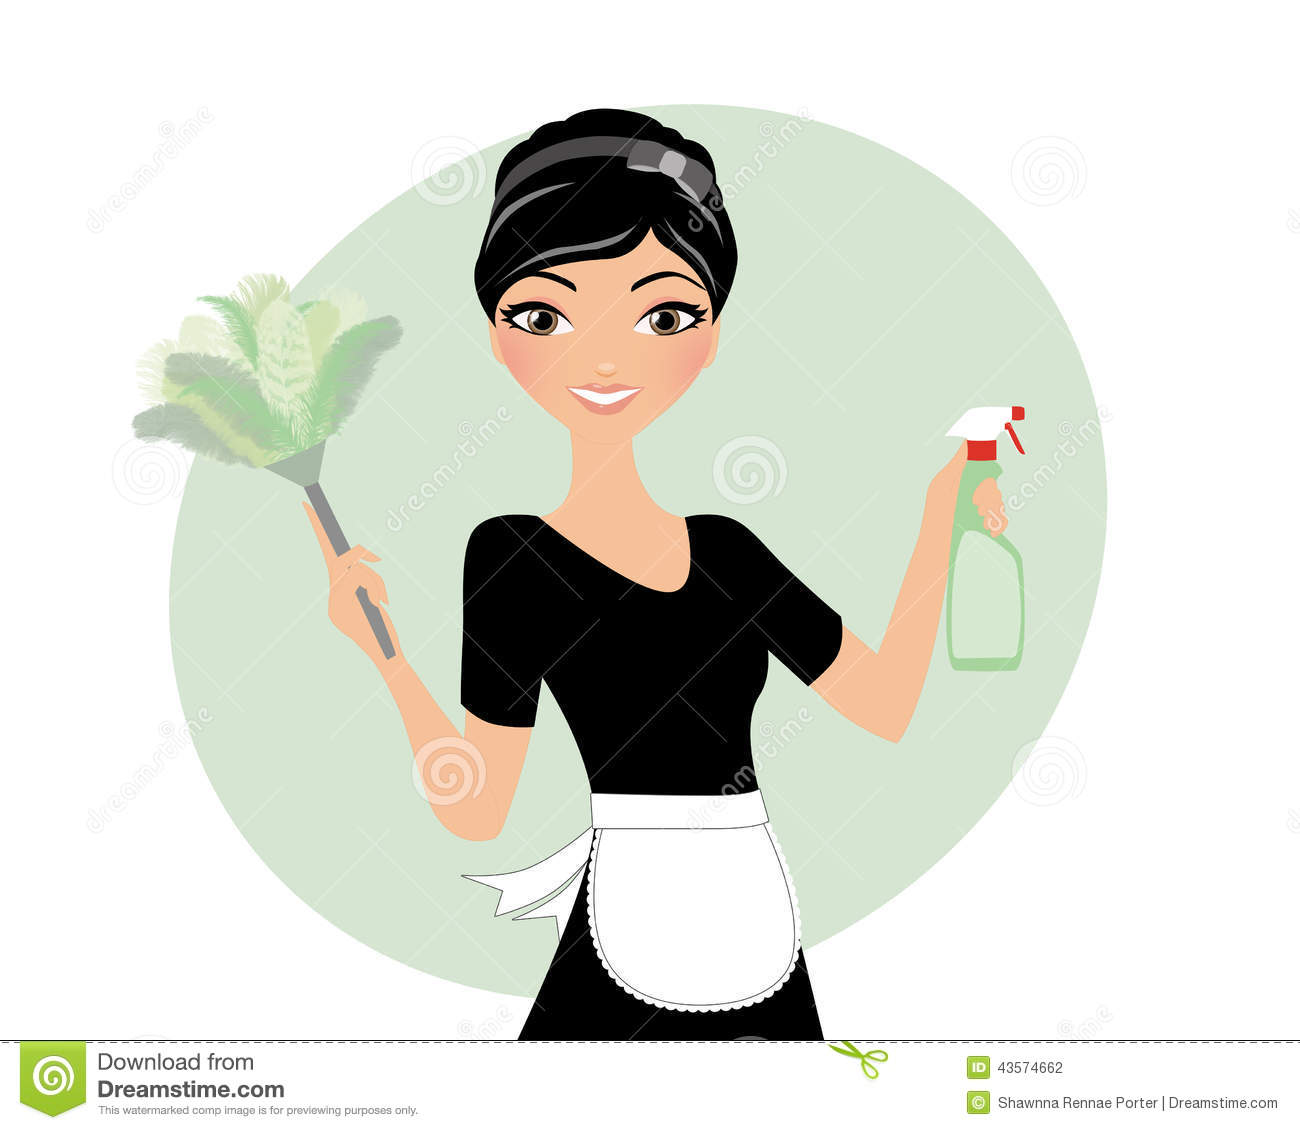 Stock Illustration House Maid Duster Woman French Feather Spray Bottle Cleaning Background Not Included Png Image43574662 on Dusting Cleaning Clip Art Free